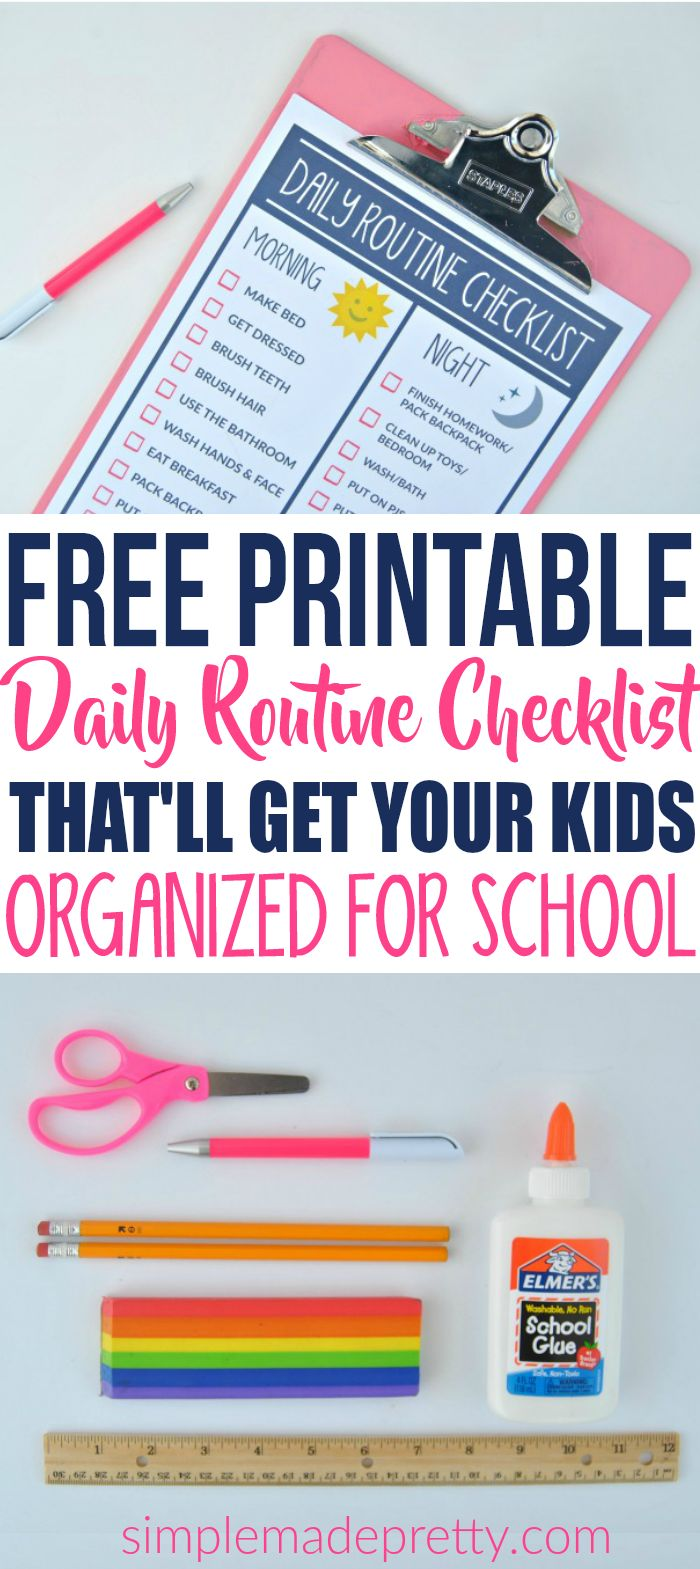 This free printable routine chart for kids was so helpful! If you want to establish a routine for kids, this is great information to get started. The daily checklist for kids is really cute and easy to follow!